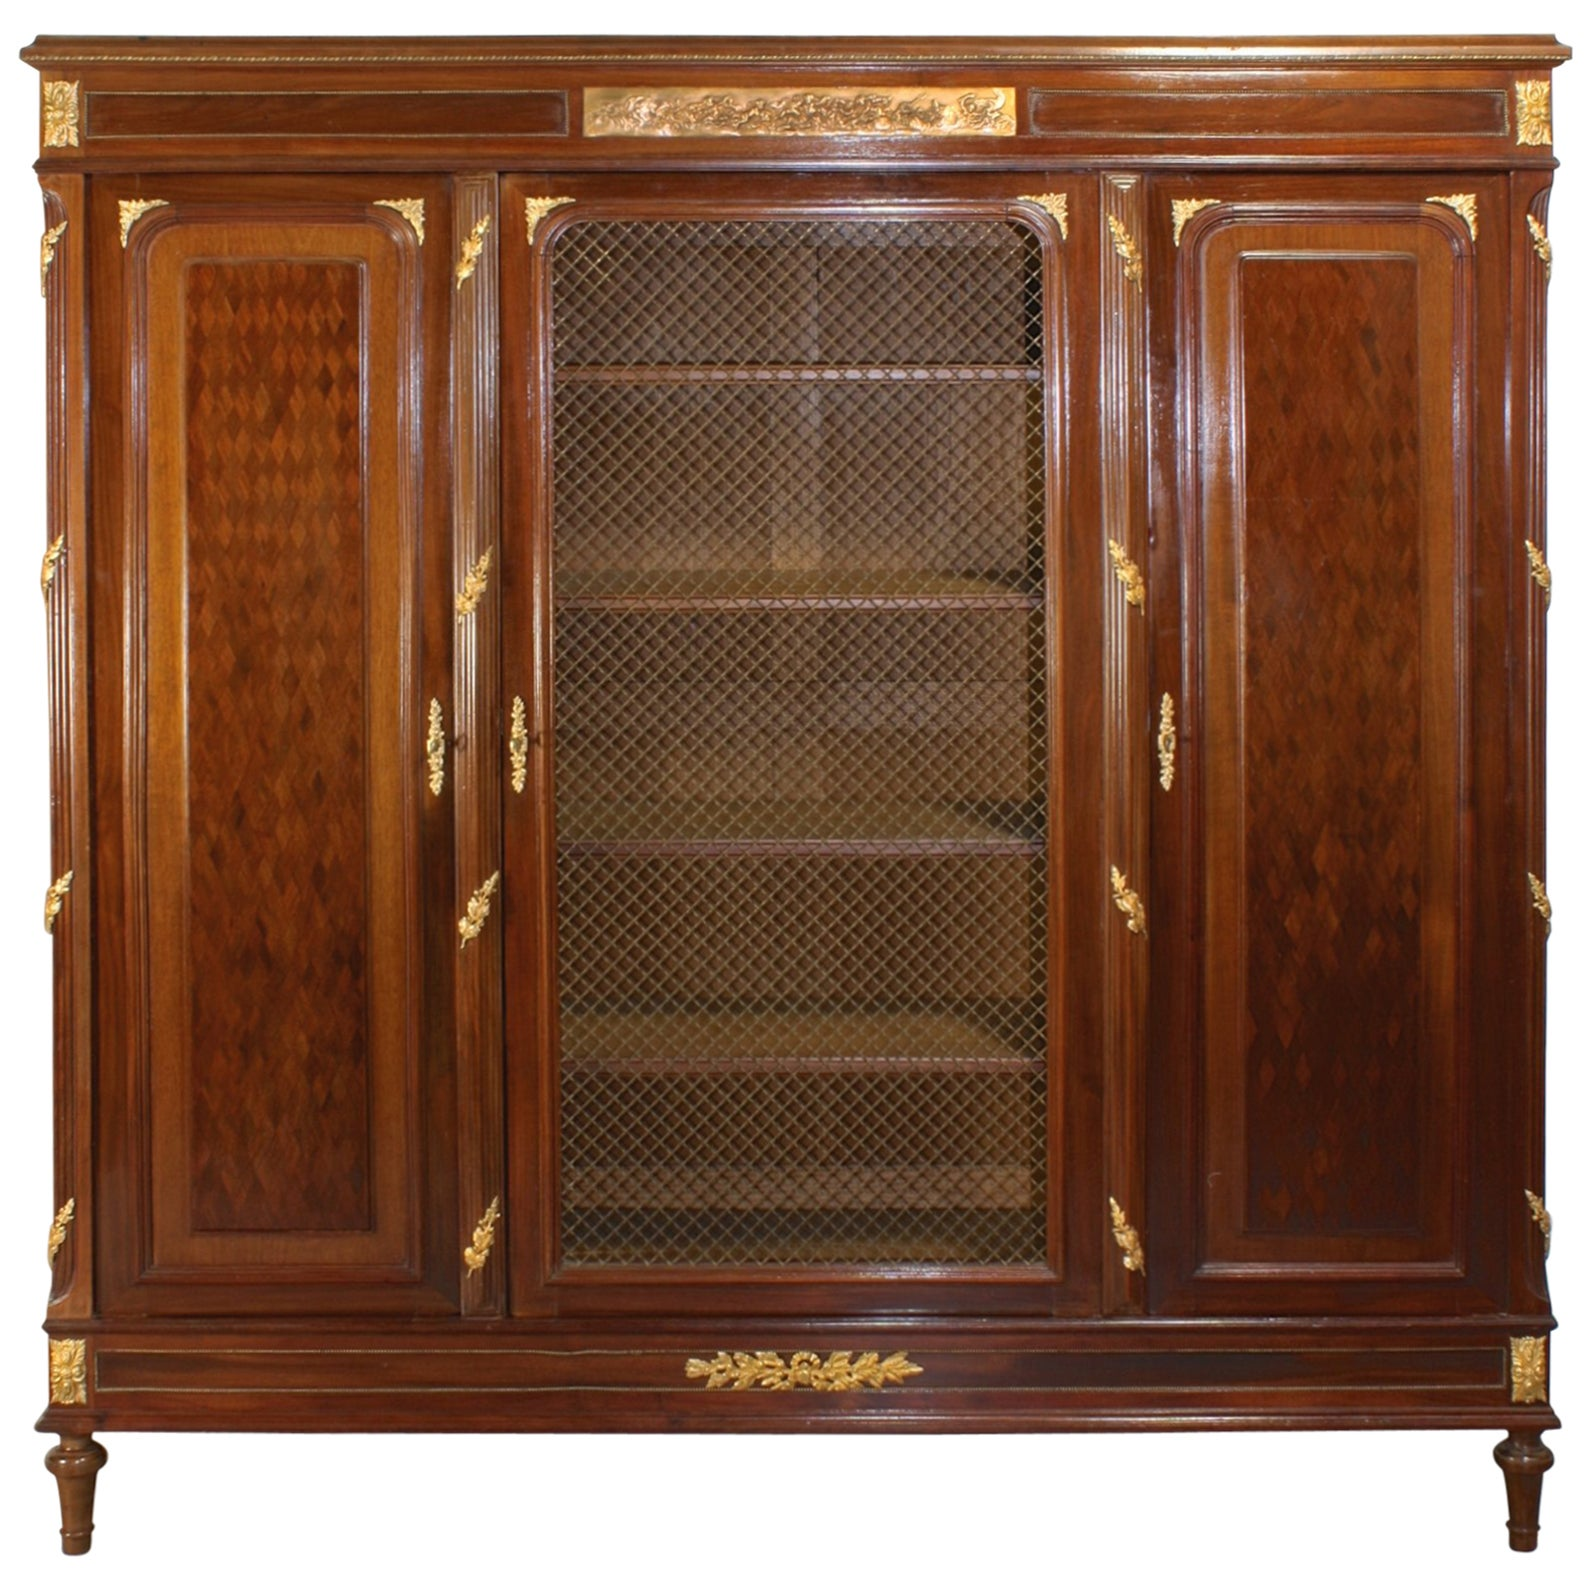 French Louis XVI Style Mahogany Bibliotheque